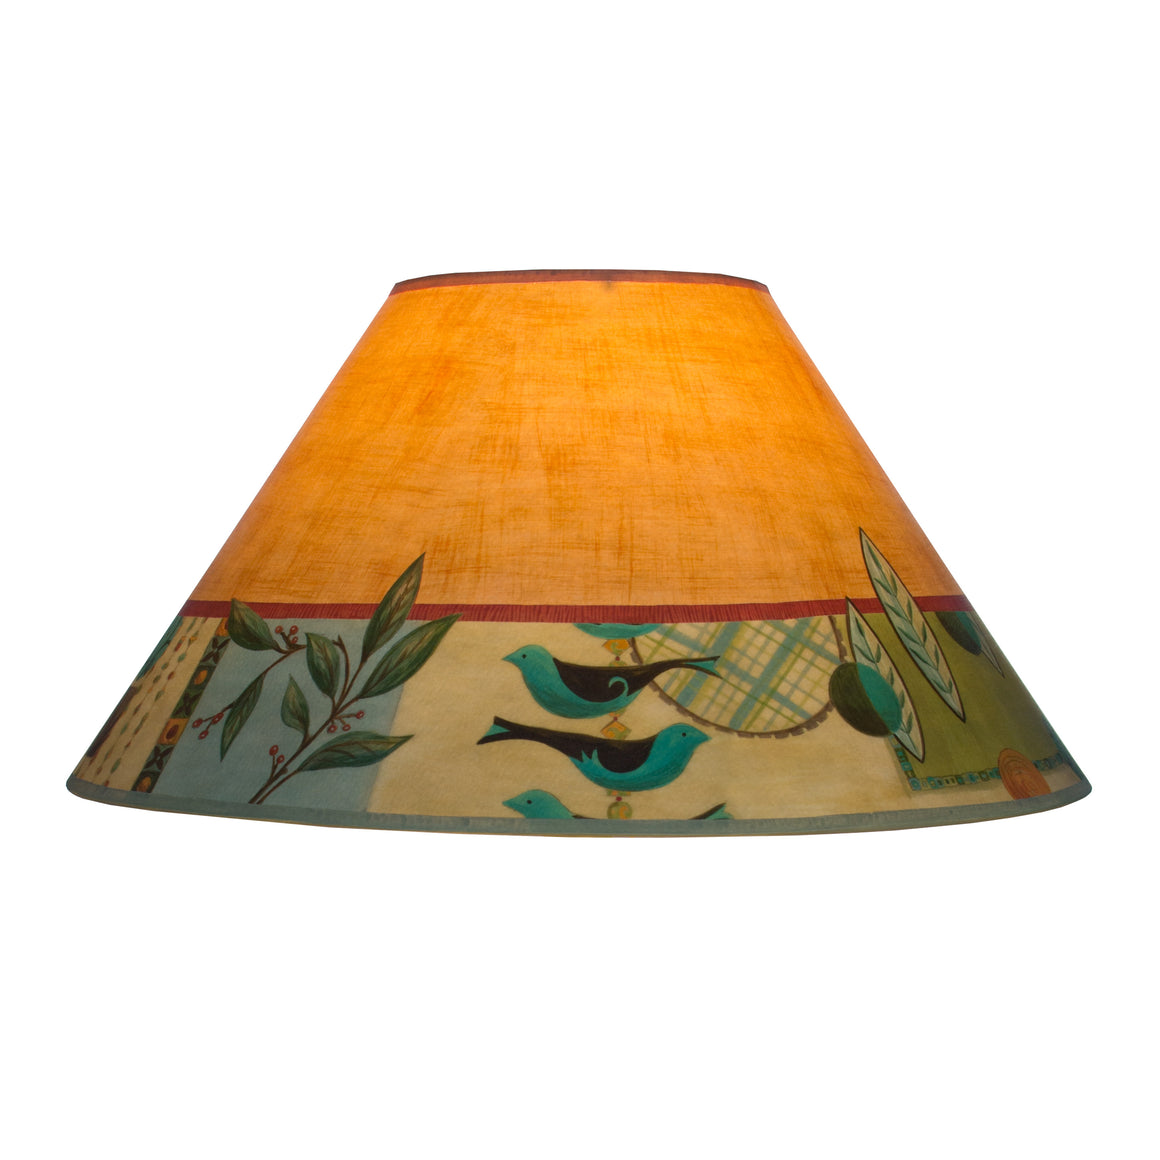 Orange and turquoise lamp shade -  Large Conical Lamp Shade In New Capri Spice